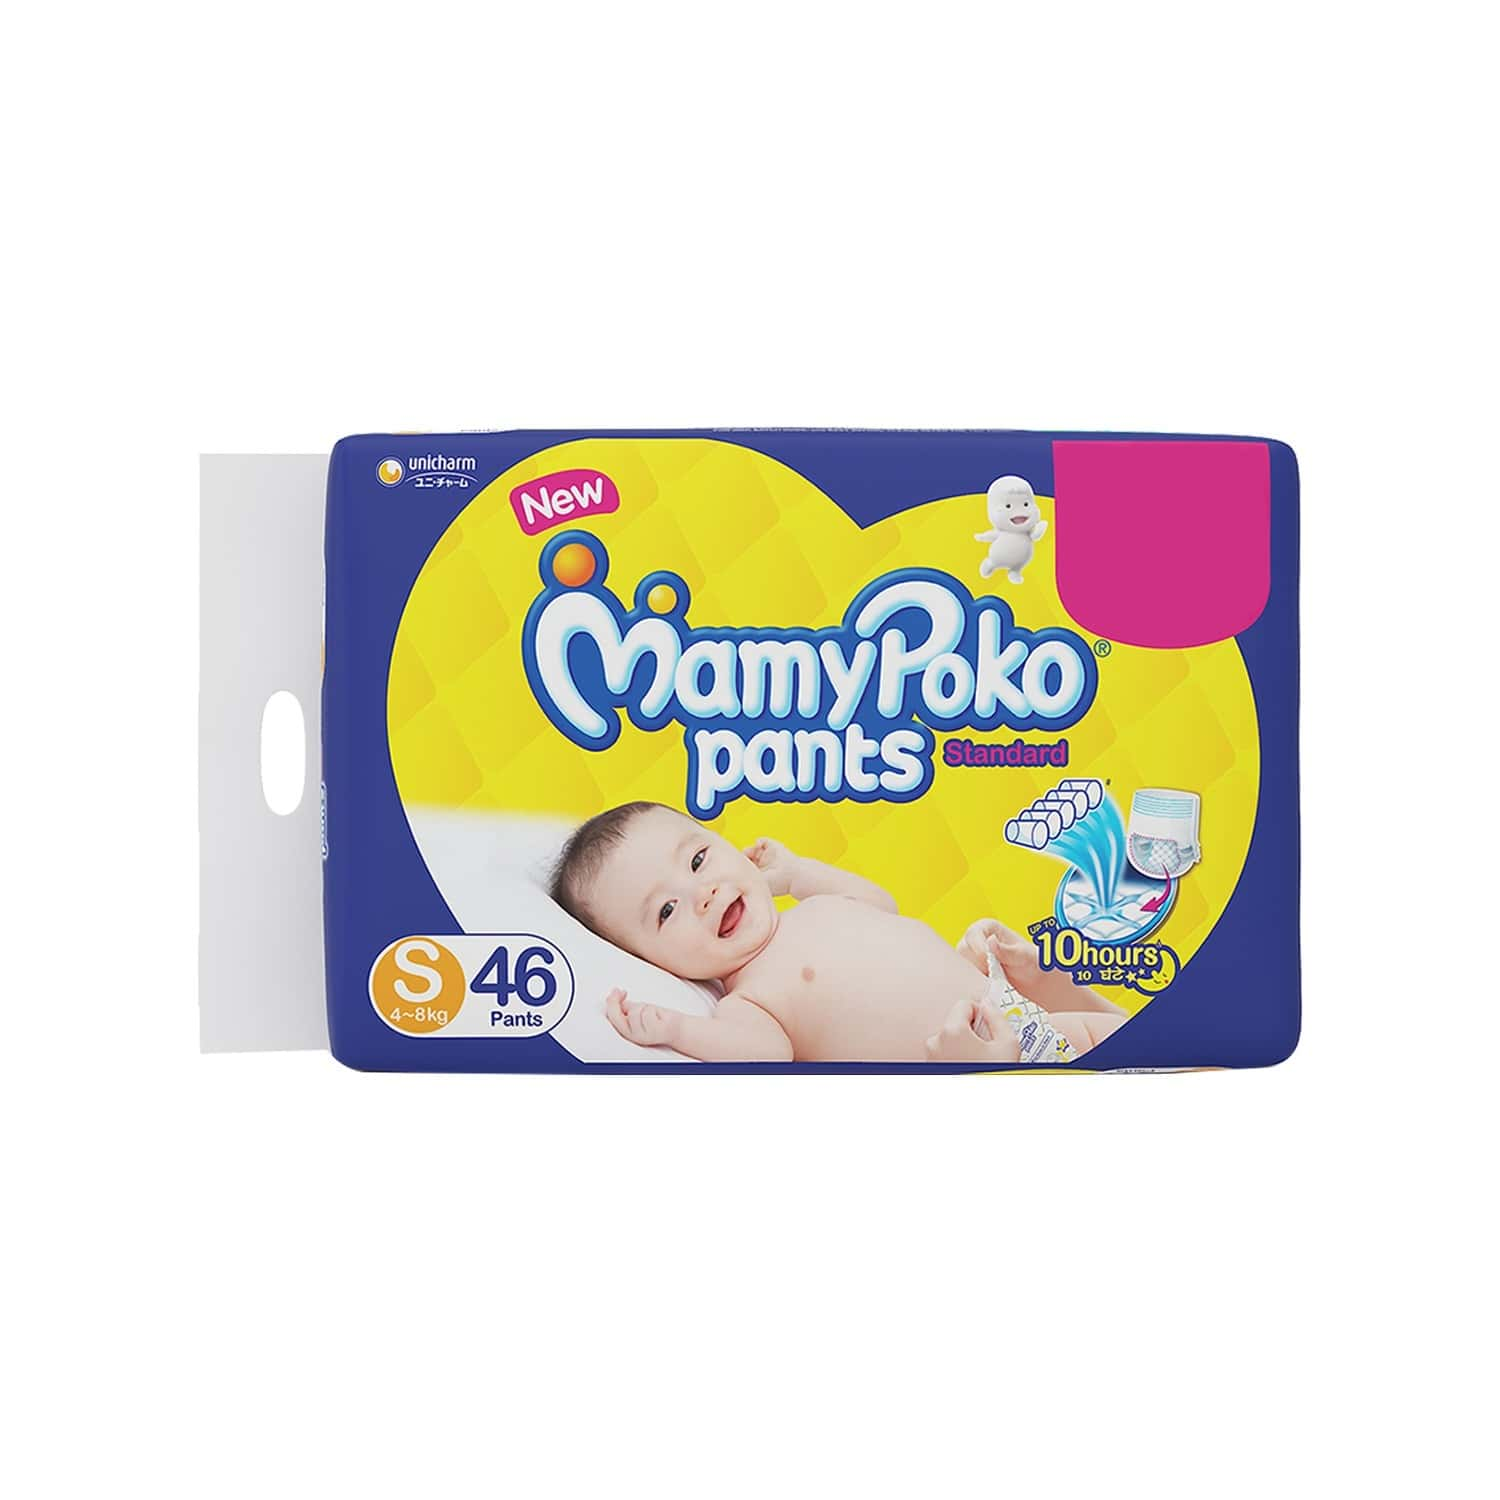 Mamy Poko Pants Standard Pant Style Small Size Diapers - 46 Count